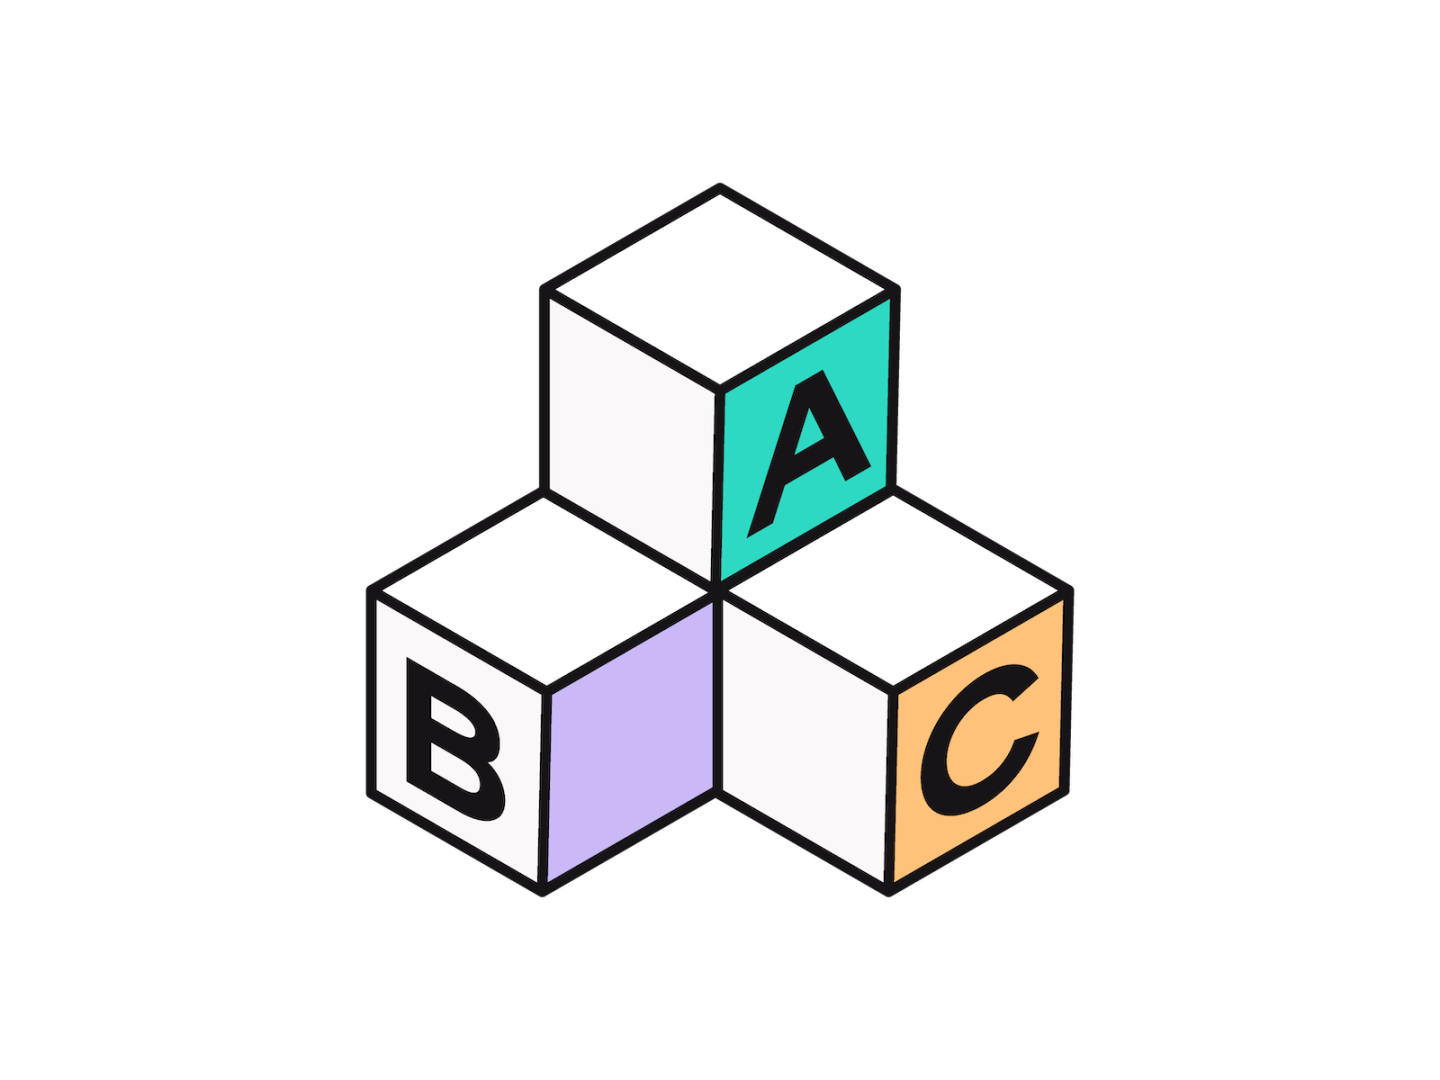 Illustration of 3 alphabet blocks, B and C on the bottom with A on top